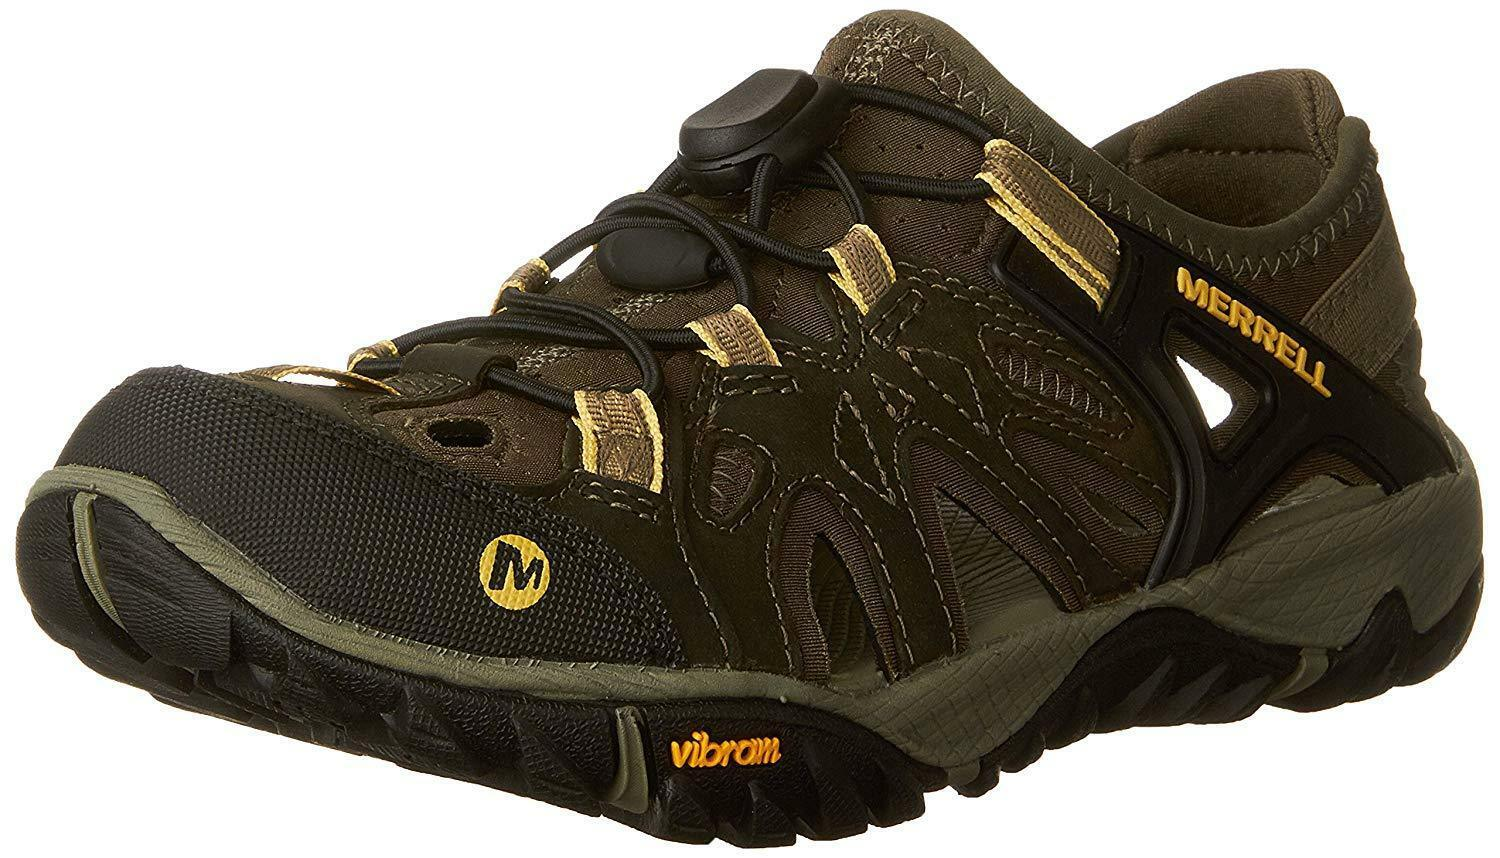 Merrell Women's All Out Blaze Sieve Water Shoe image 8